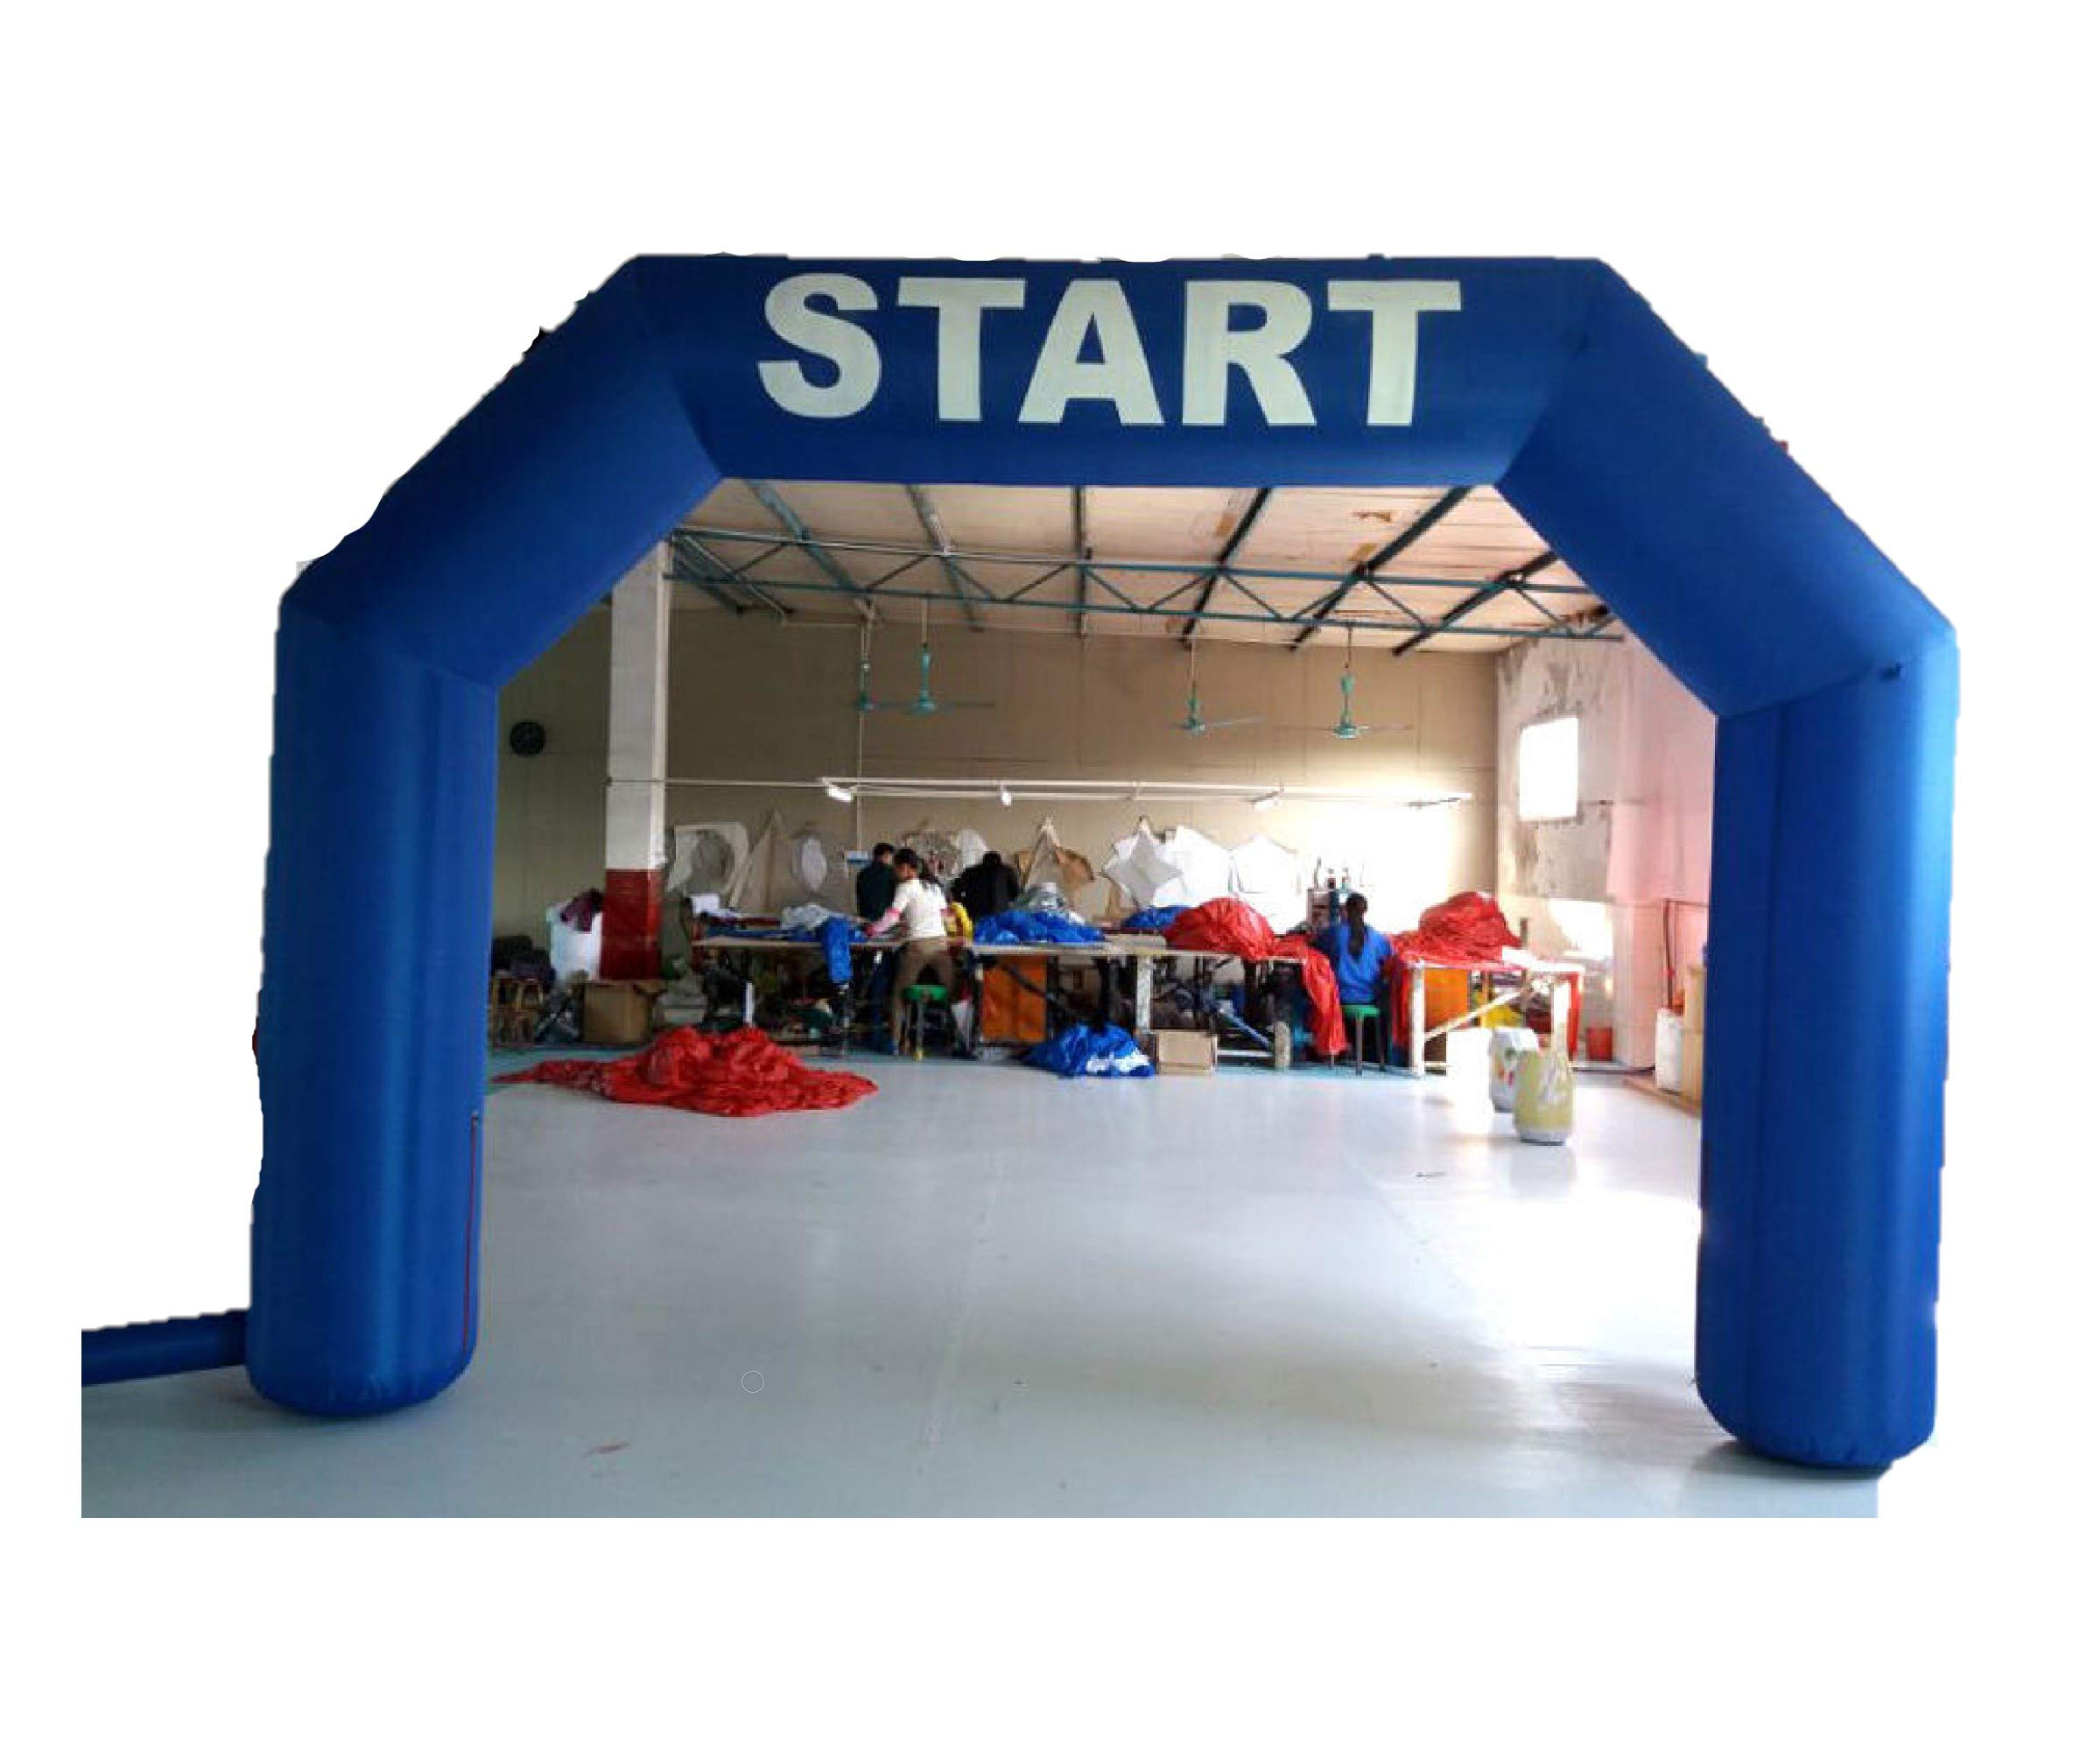 inflatable4less 15FT Hexagon Inflatable Arch Archway w/Fan Start Finish, No Customization (Blue)